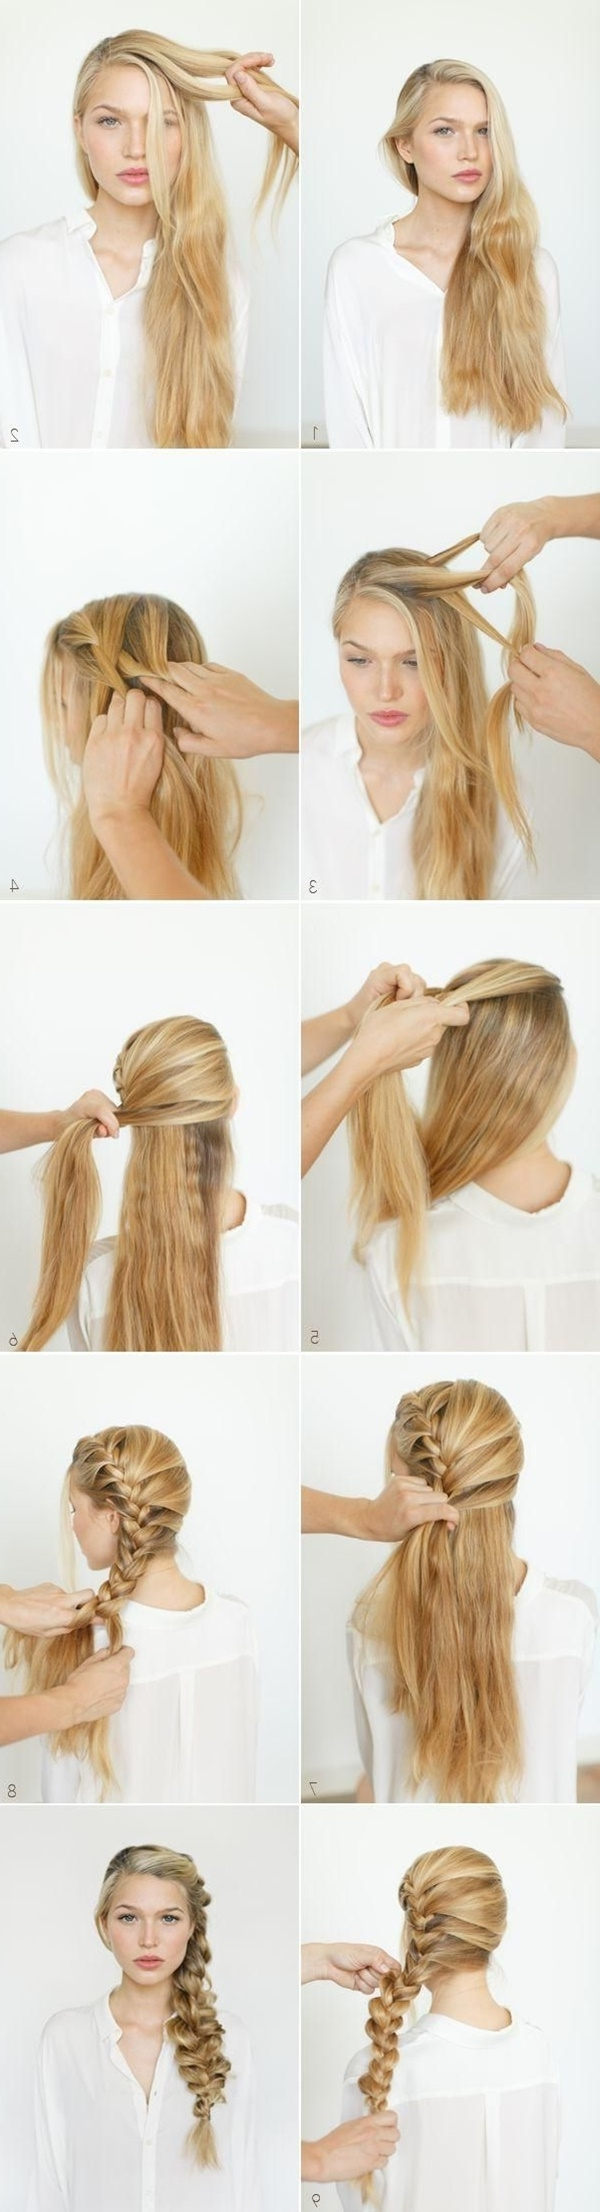 Widely Used Braided Hairstyles For Layered Hair Regarding 101 Romantic Braided Hairstyles For Long Hair And Medium Hair (View 15 of 15)